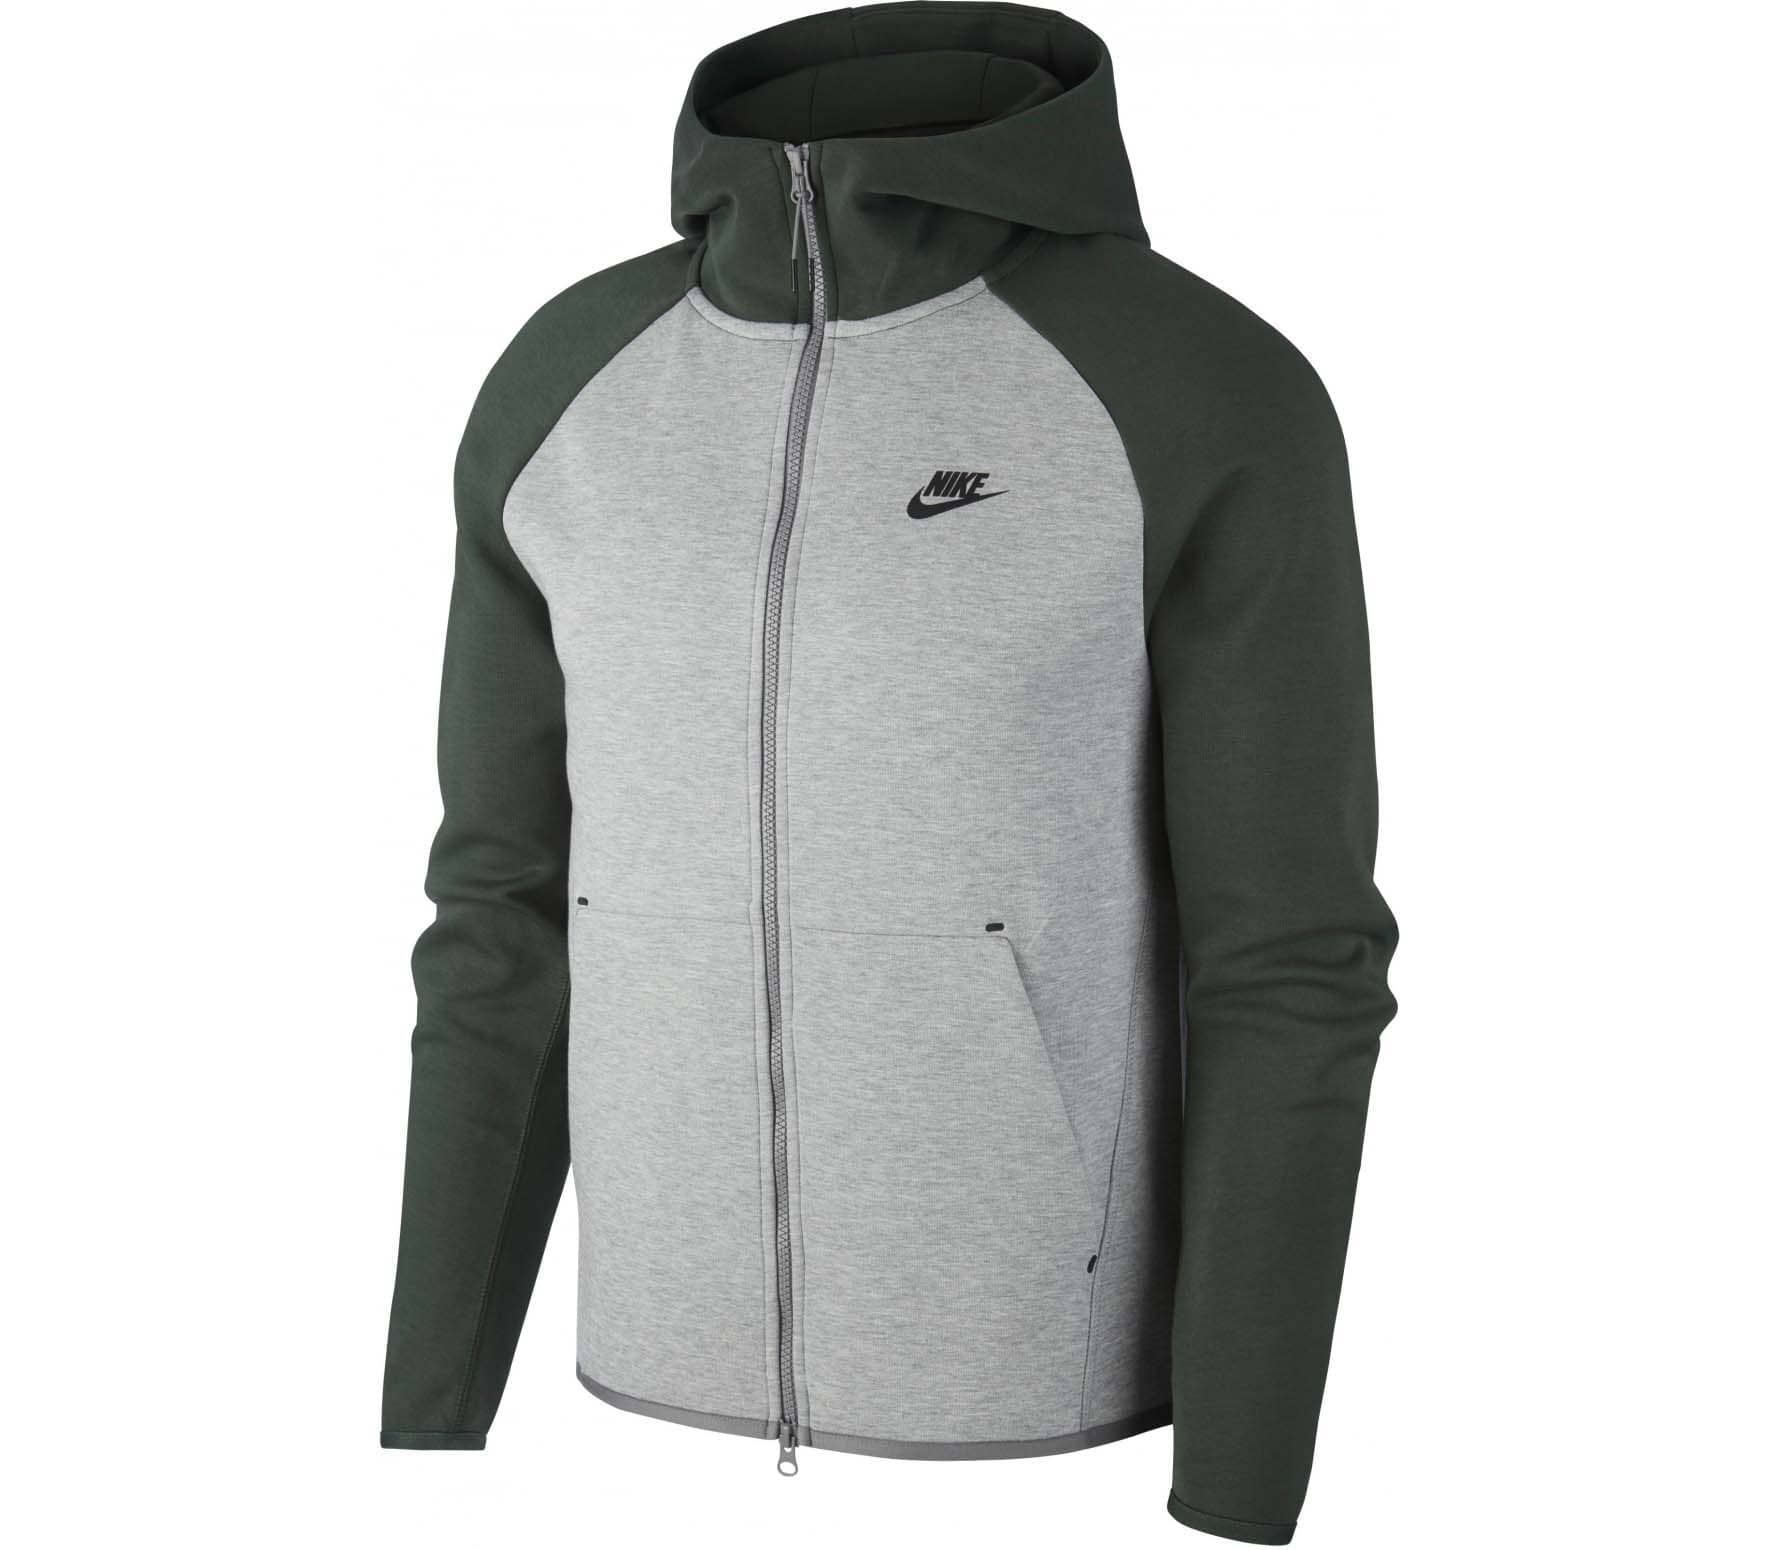 Tech Fleece Men Zip-up Sweathirt